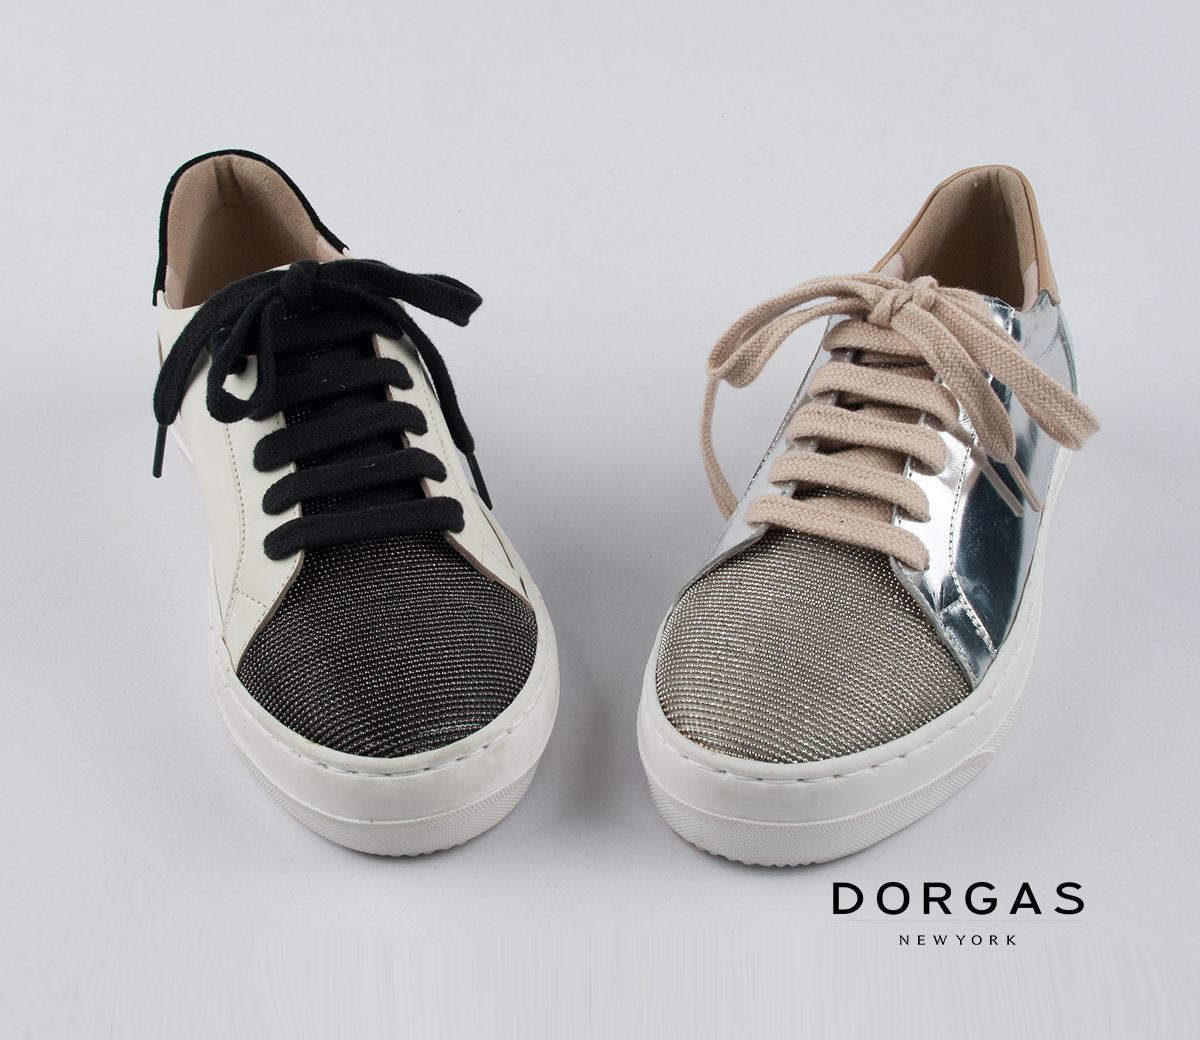 DN0118 shoes